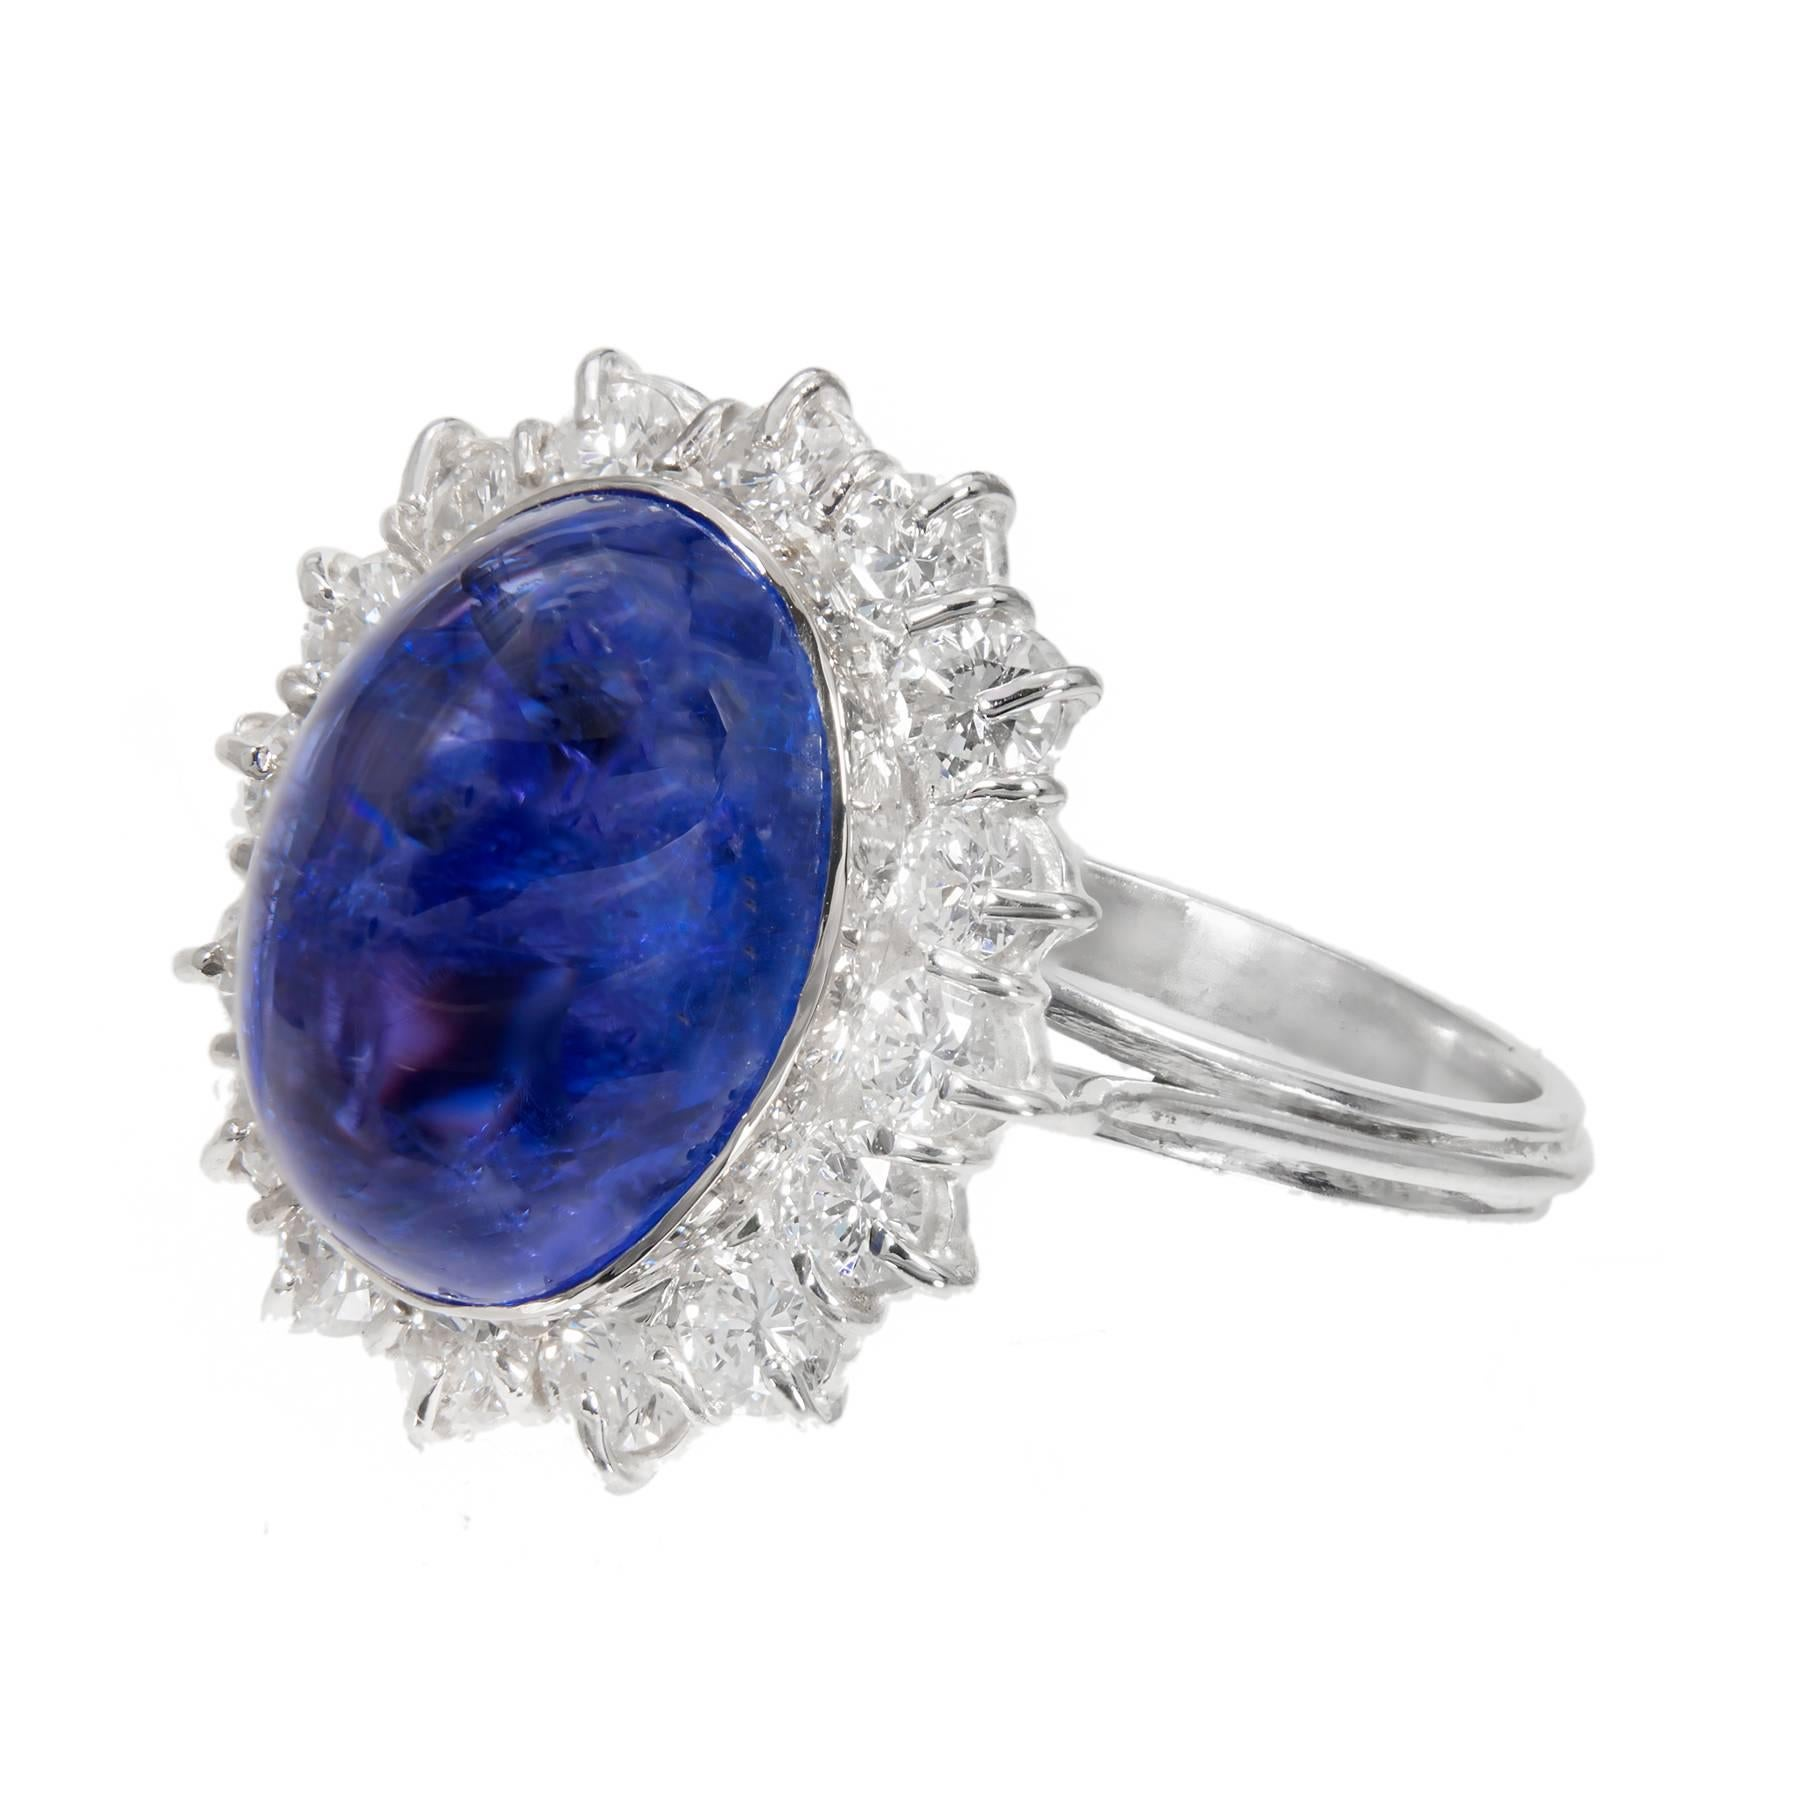 9.75 Carat Tanzanite Cabochon Diamond Halo Gold Engagement Ring